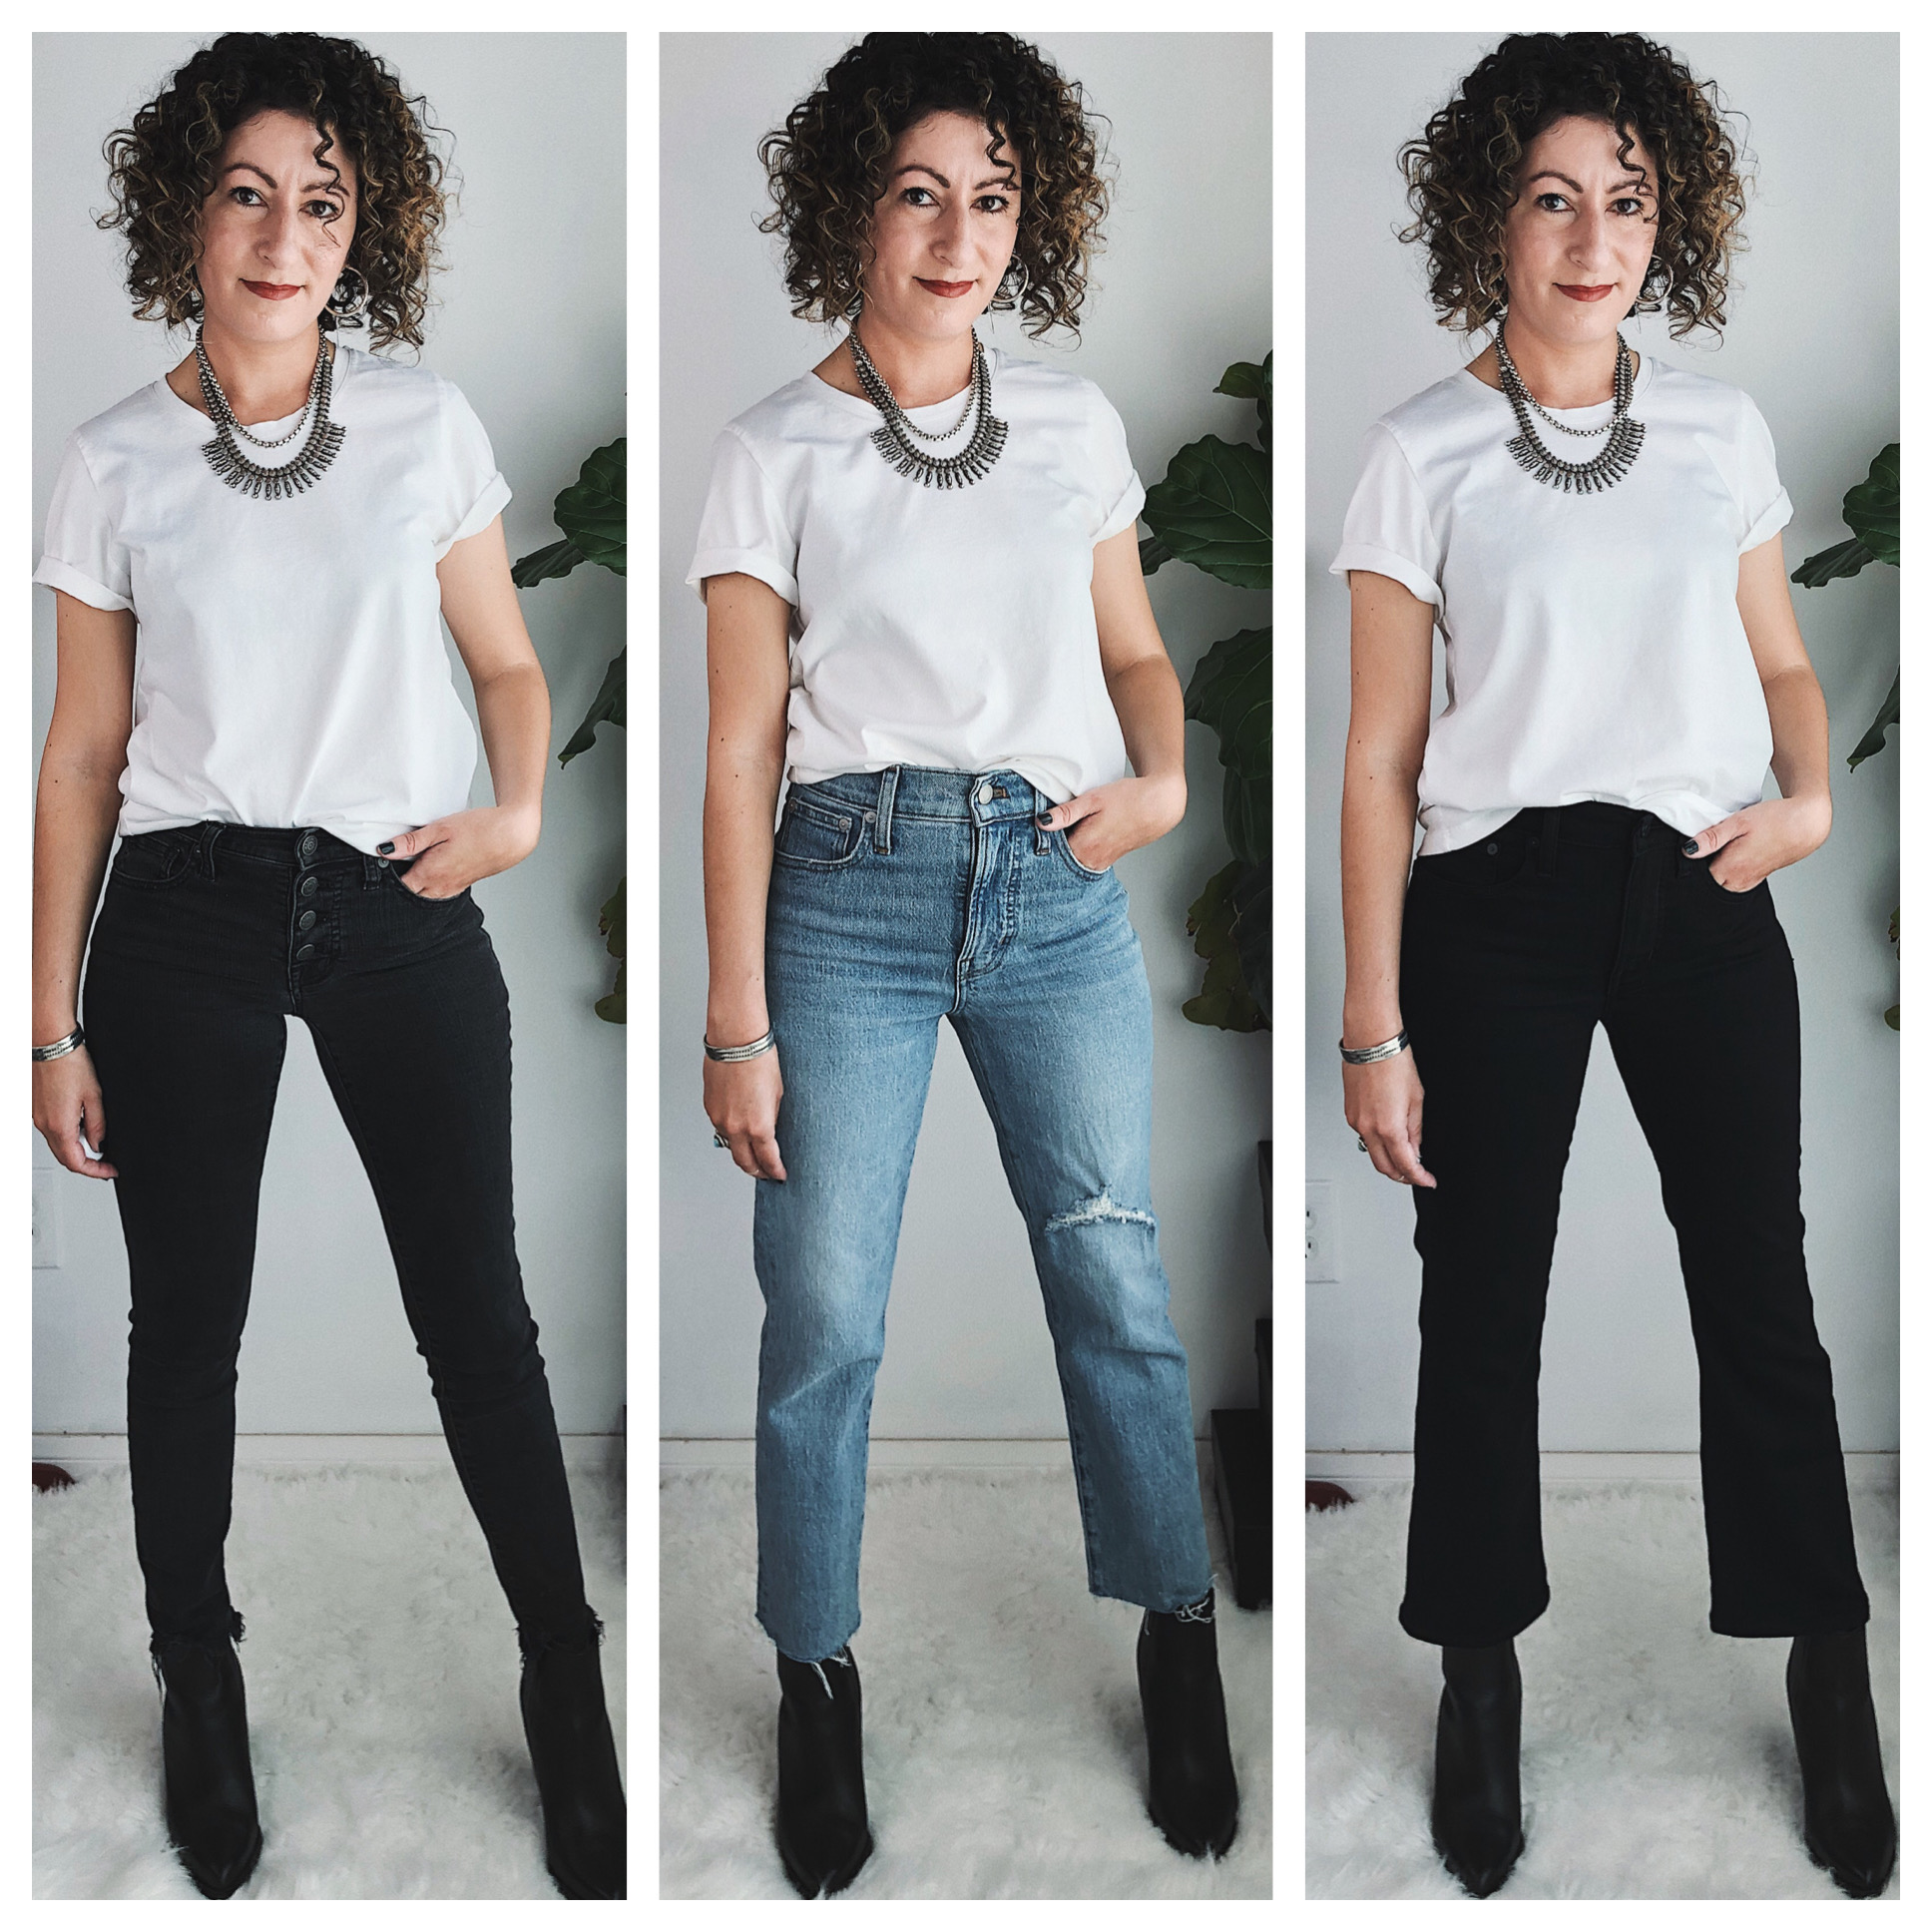 Madewell Petite Denim Review & Try-On: Skinny, Demi-Boot, & Perfect Vintage